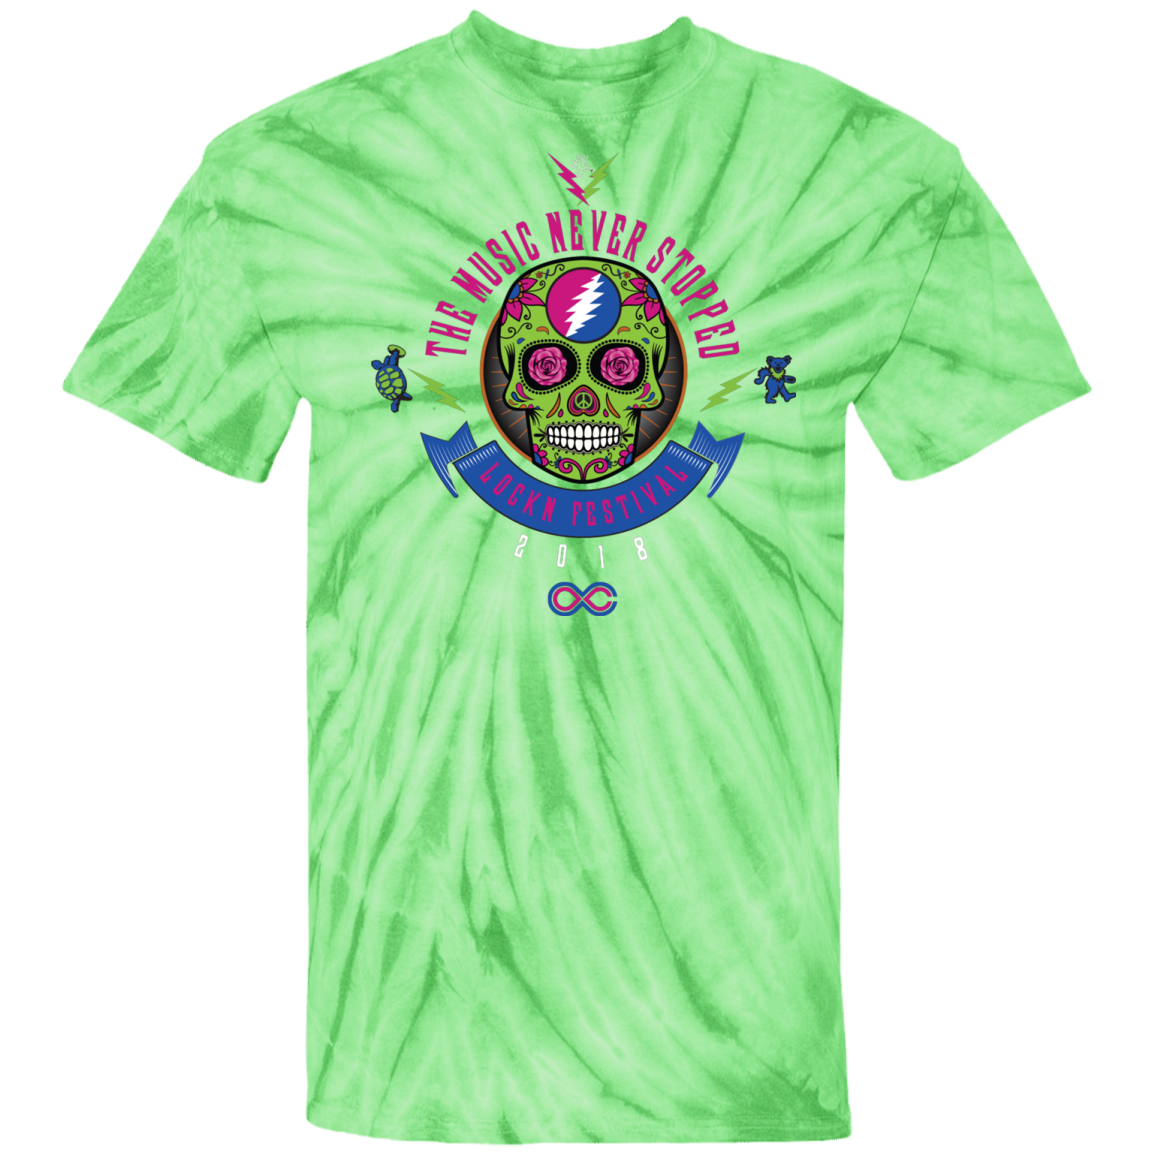 "2018 Lockn' Festival ""The Music Never Stopped"" 100% Cotton Tie Dye T-Shirt Design on Front - 12 Color Options"